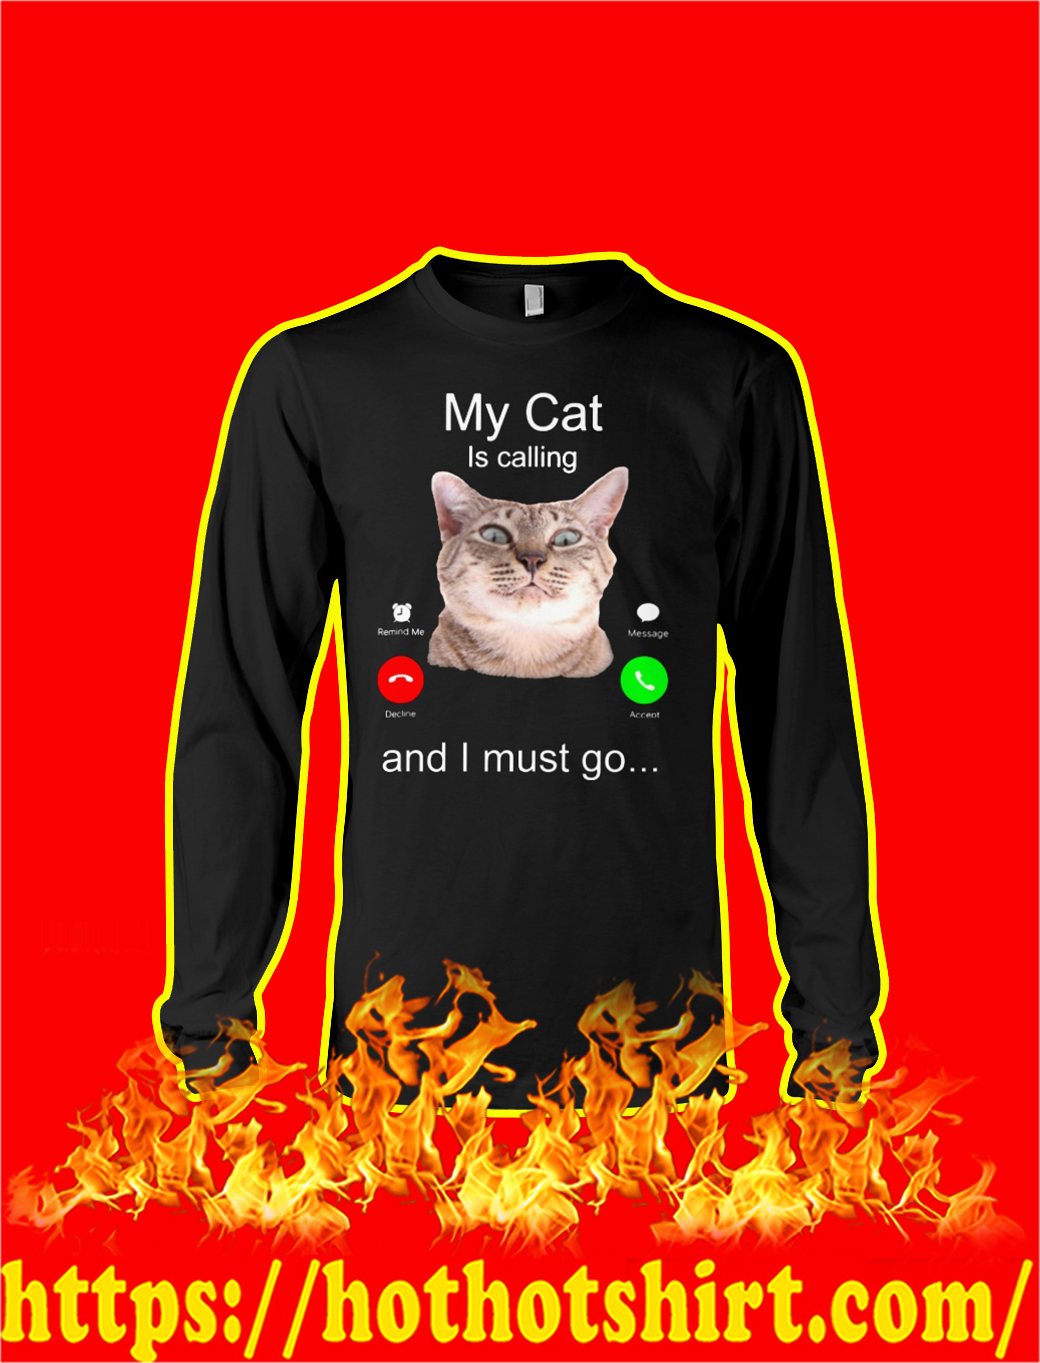 My Cat Is Calling And I Must Go longsleeve tee